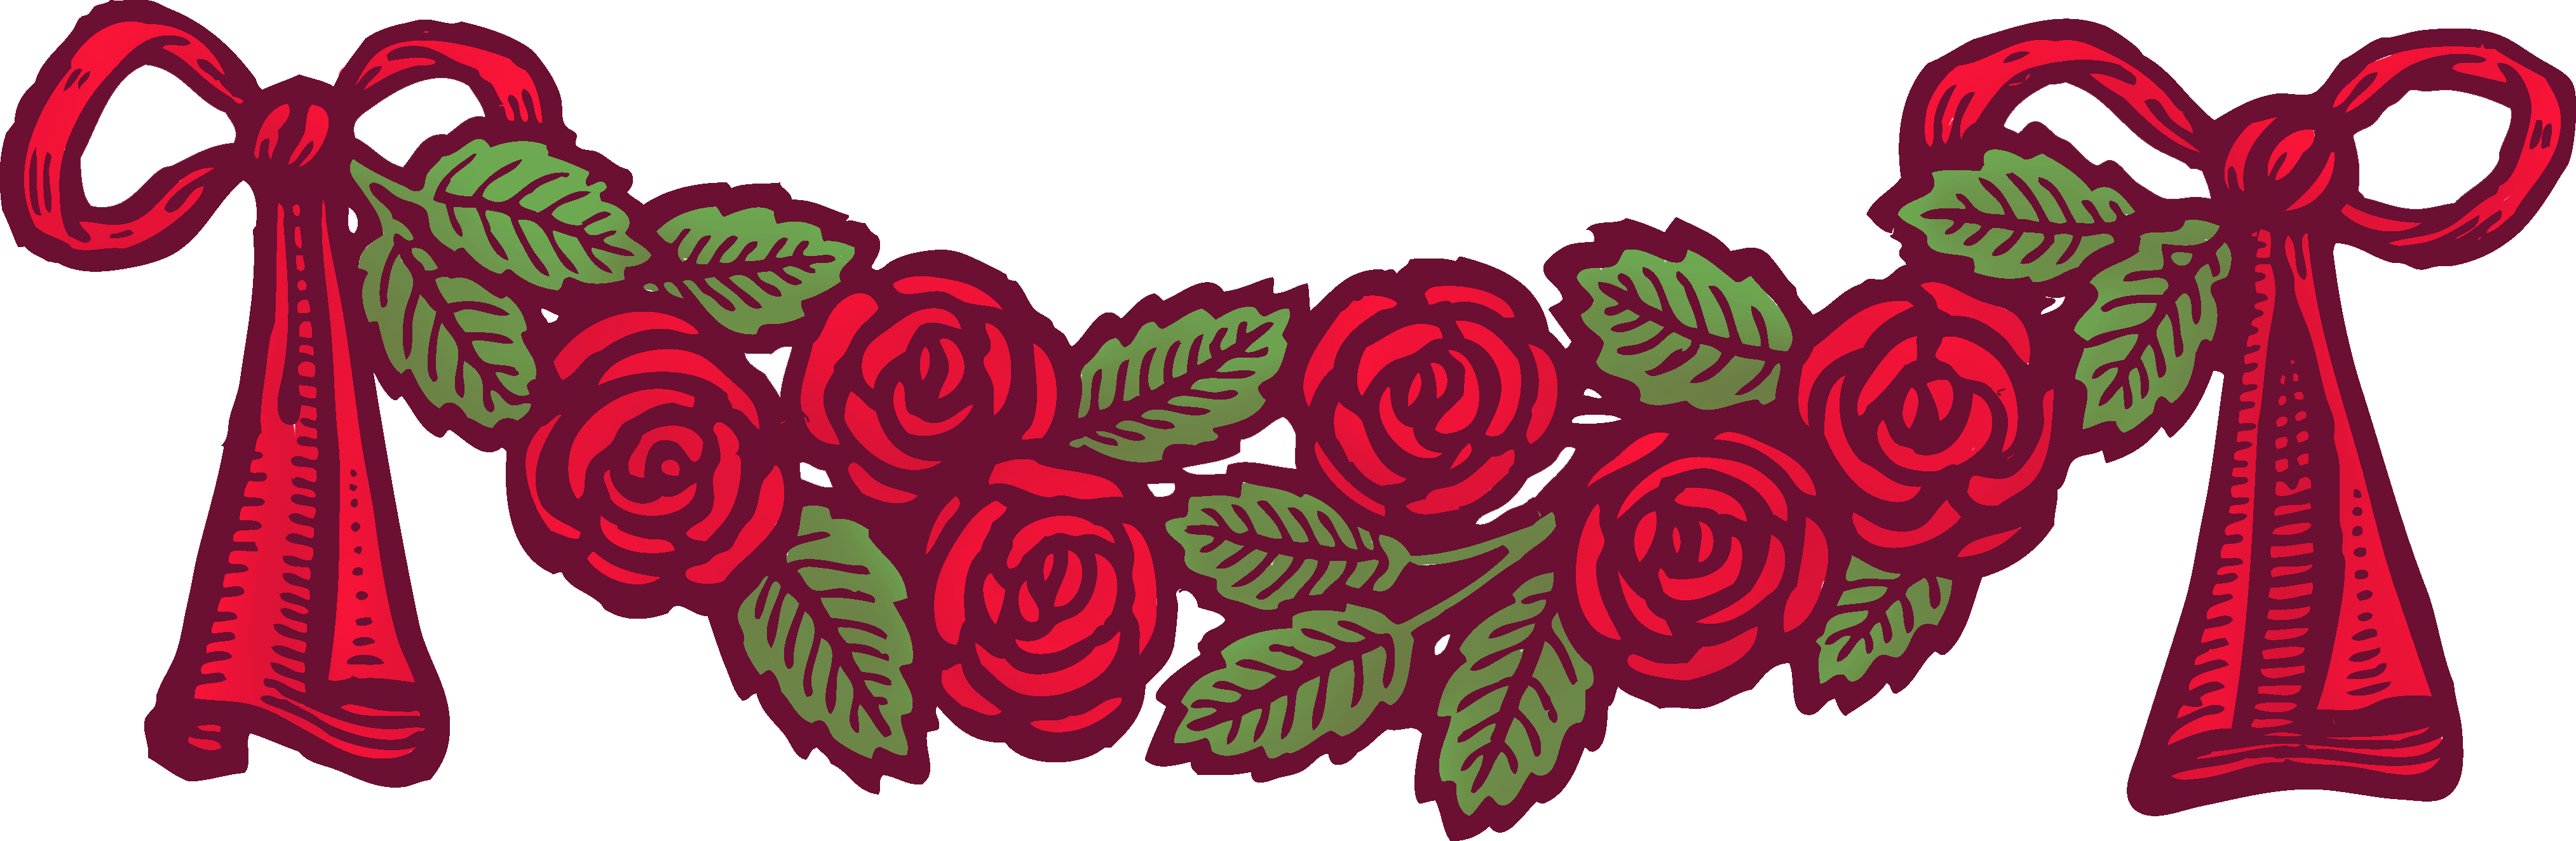 Vintage ribbon png. Red roses with ribbons